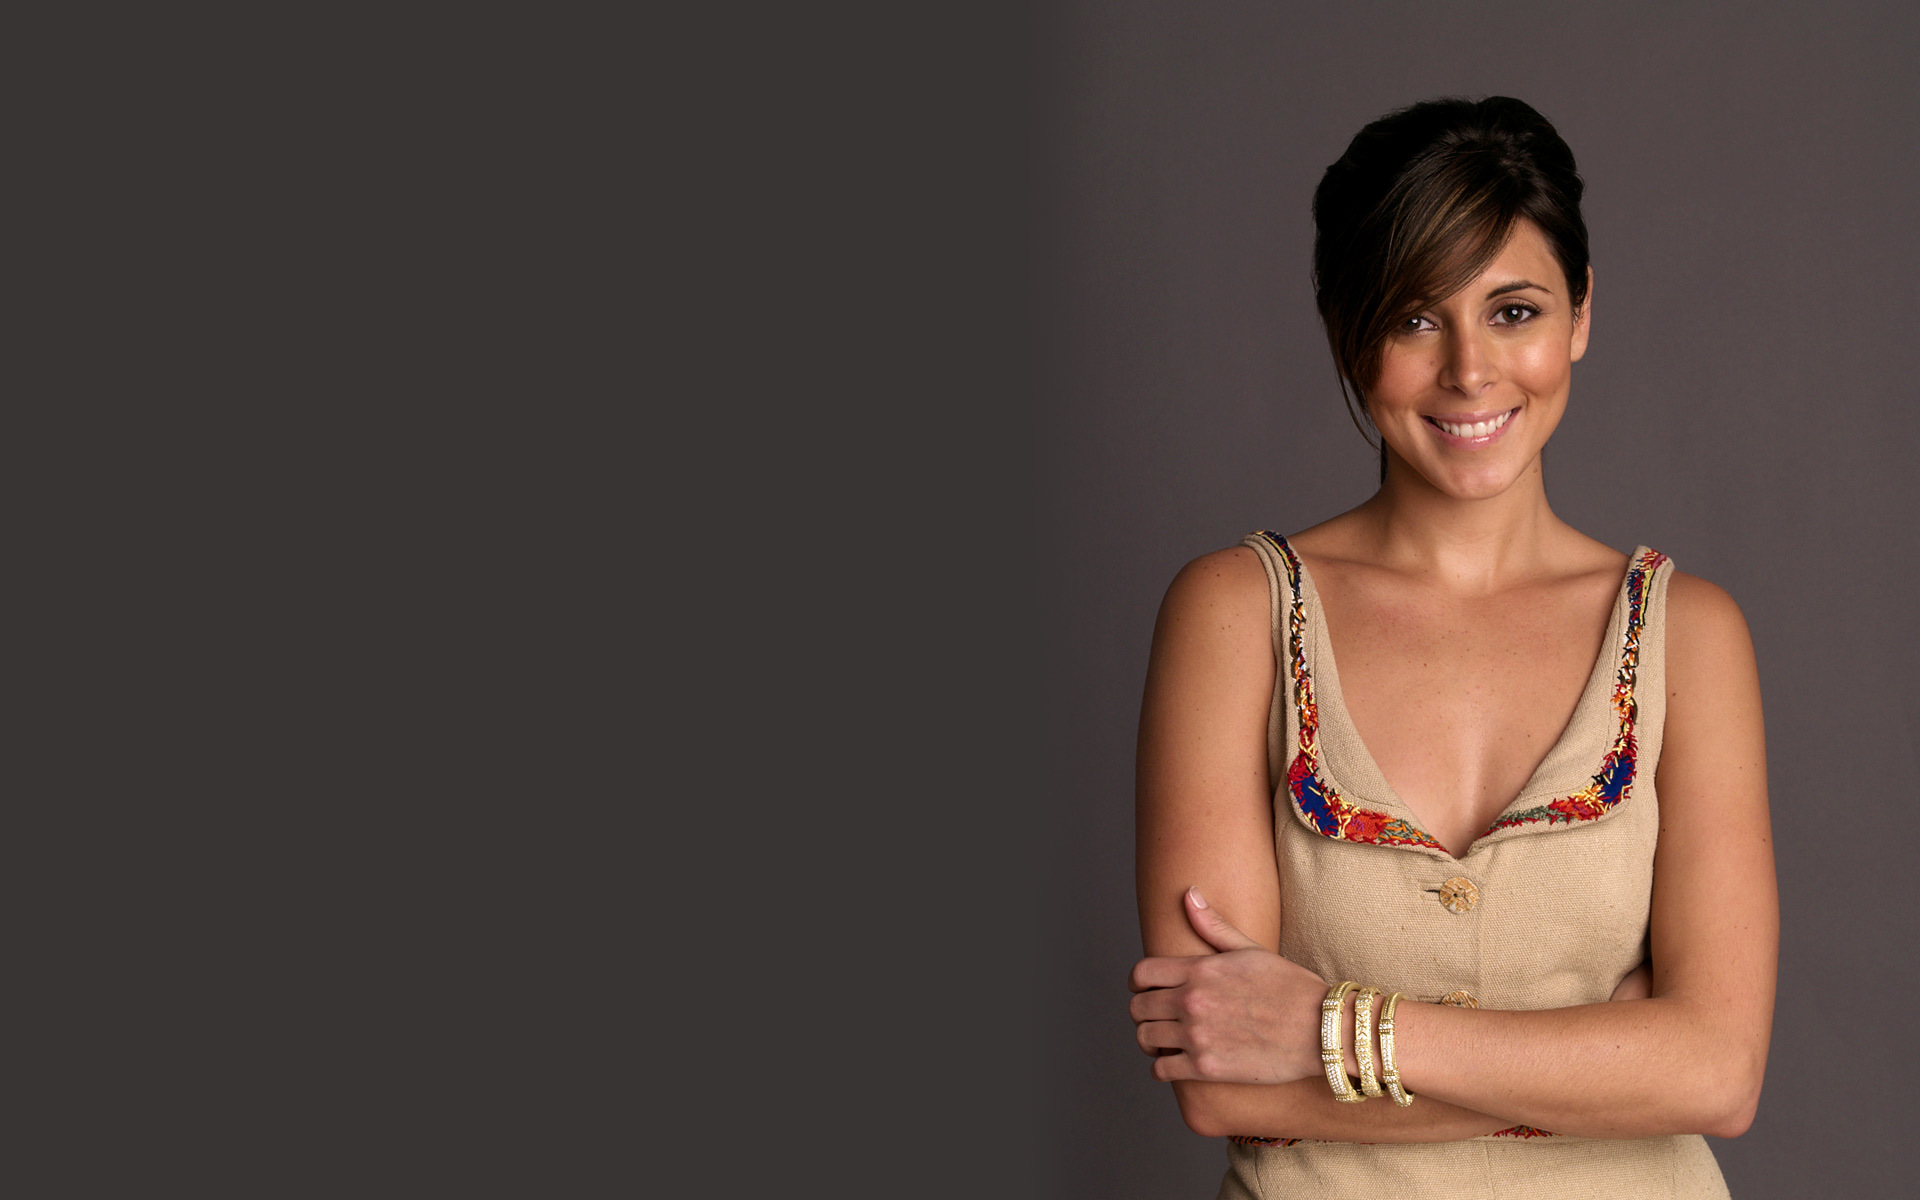 brunettes woman Jamie Lynn HD Wallpaper